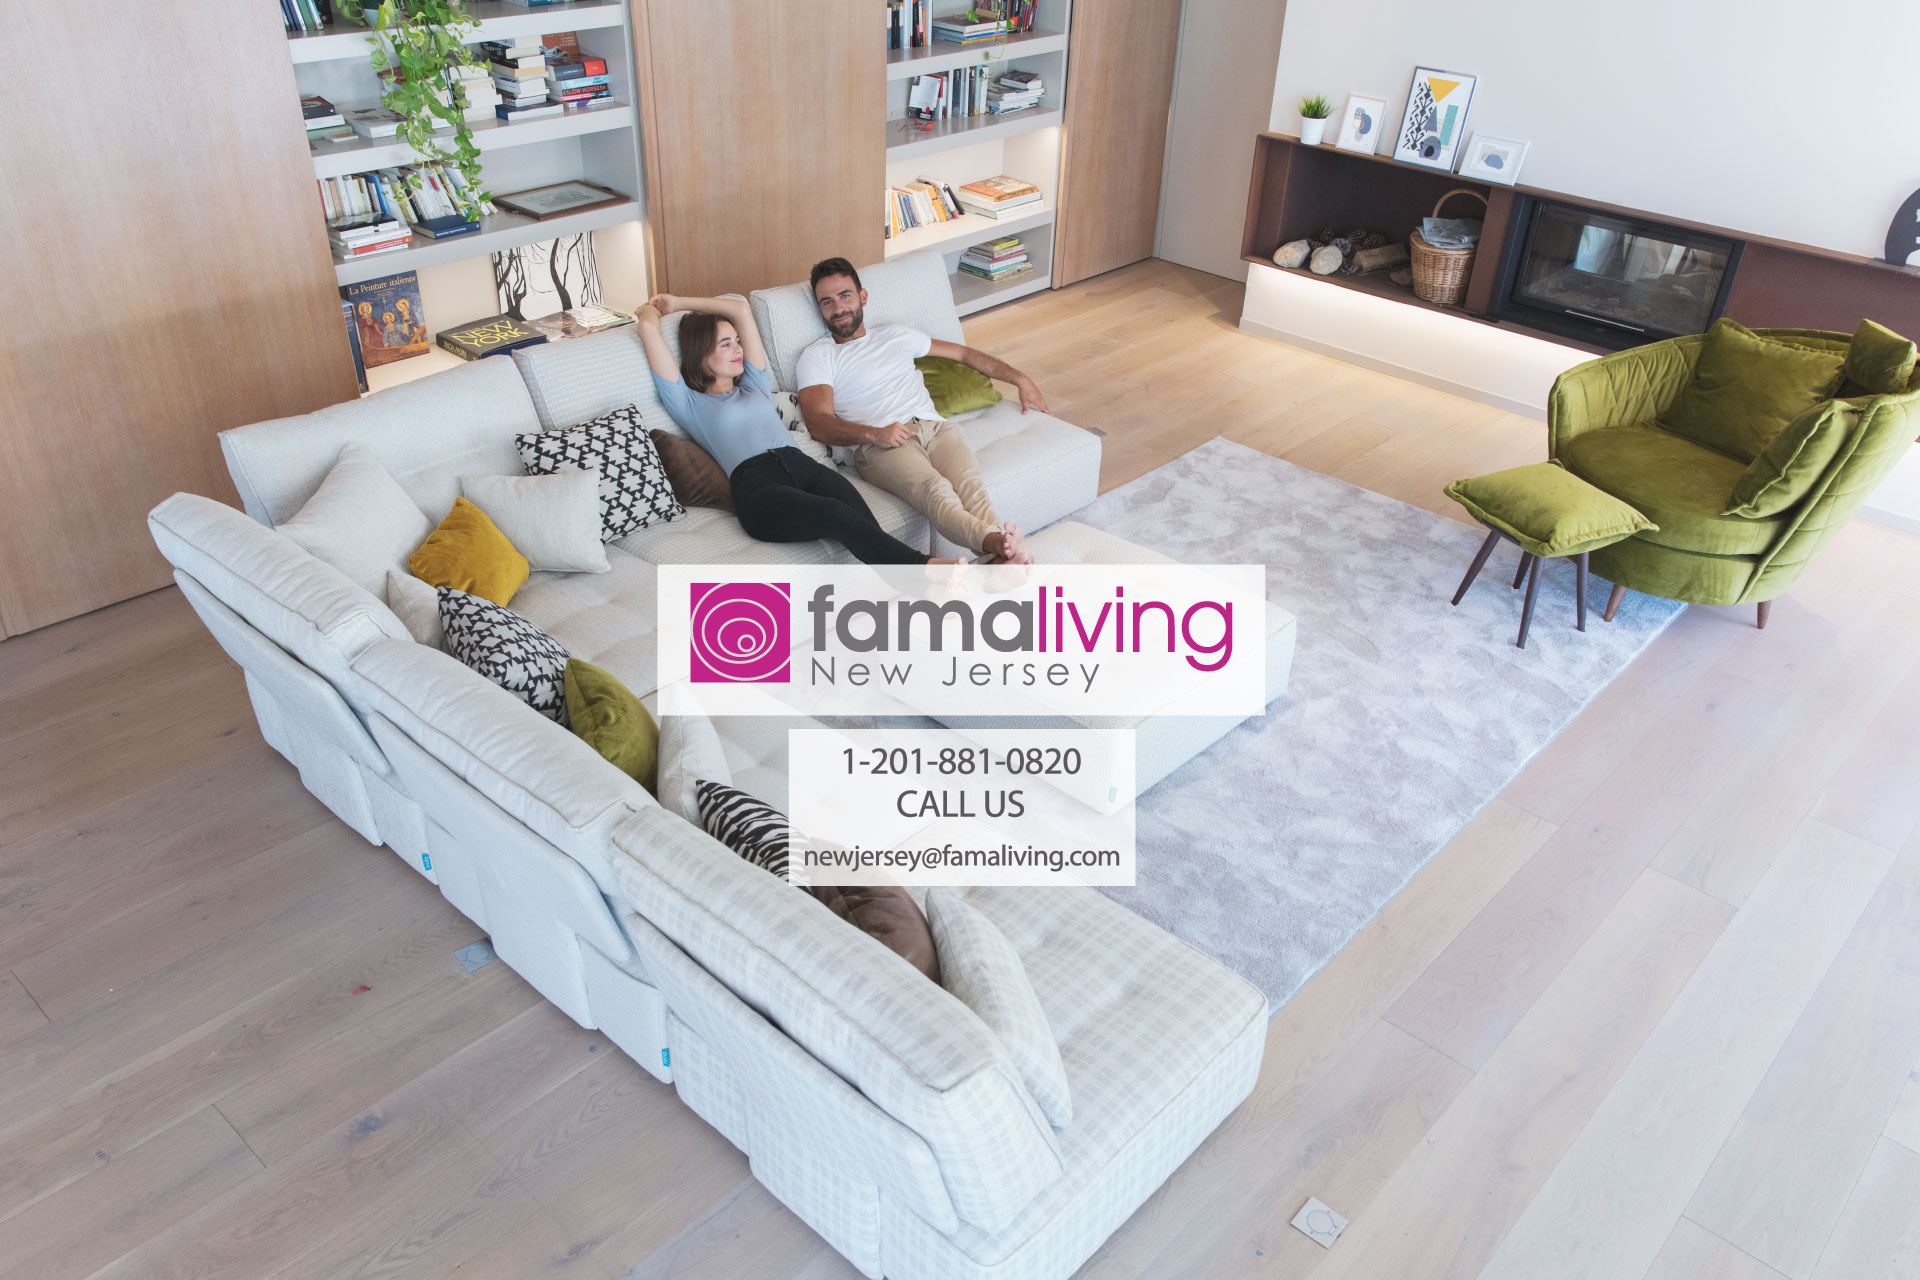 https://www.famaliving.com/newjersey